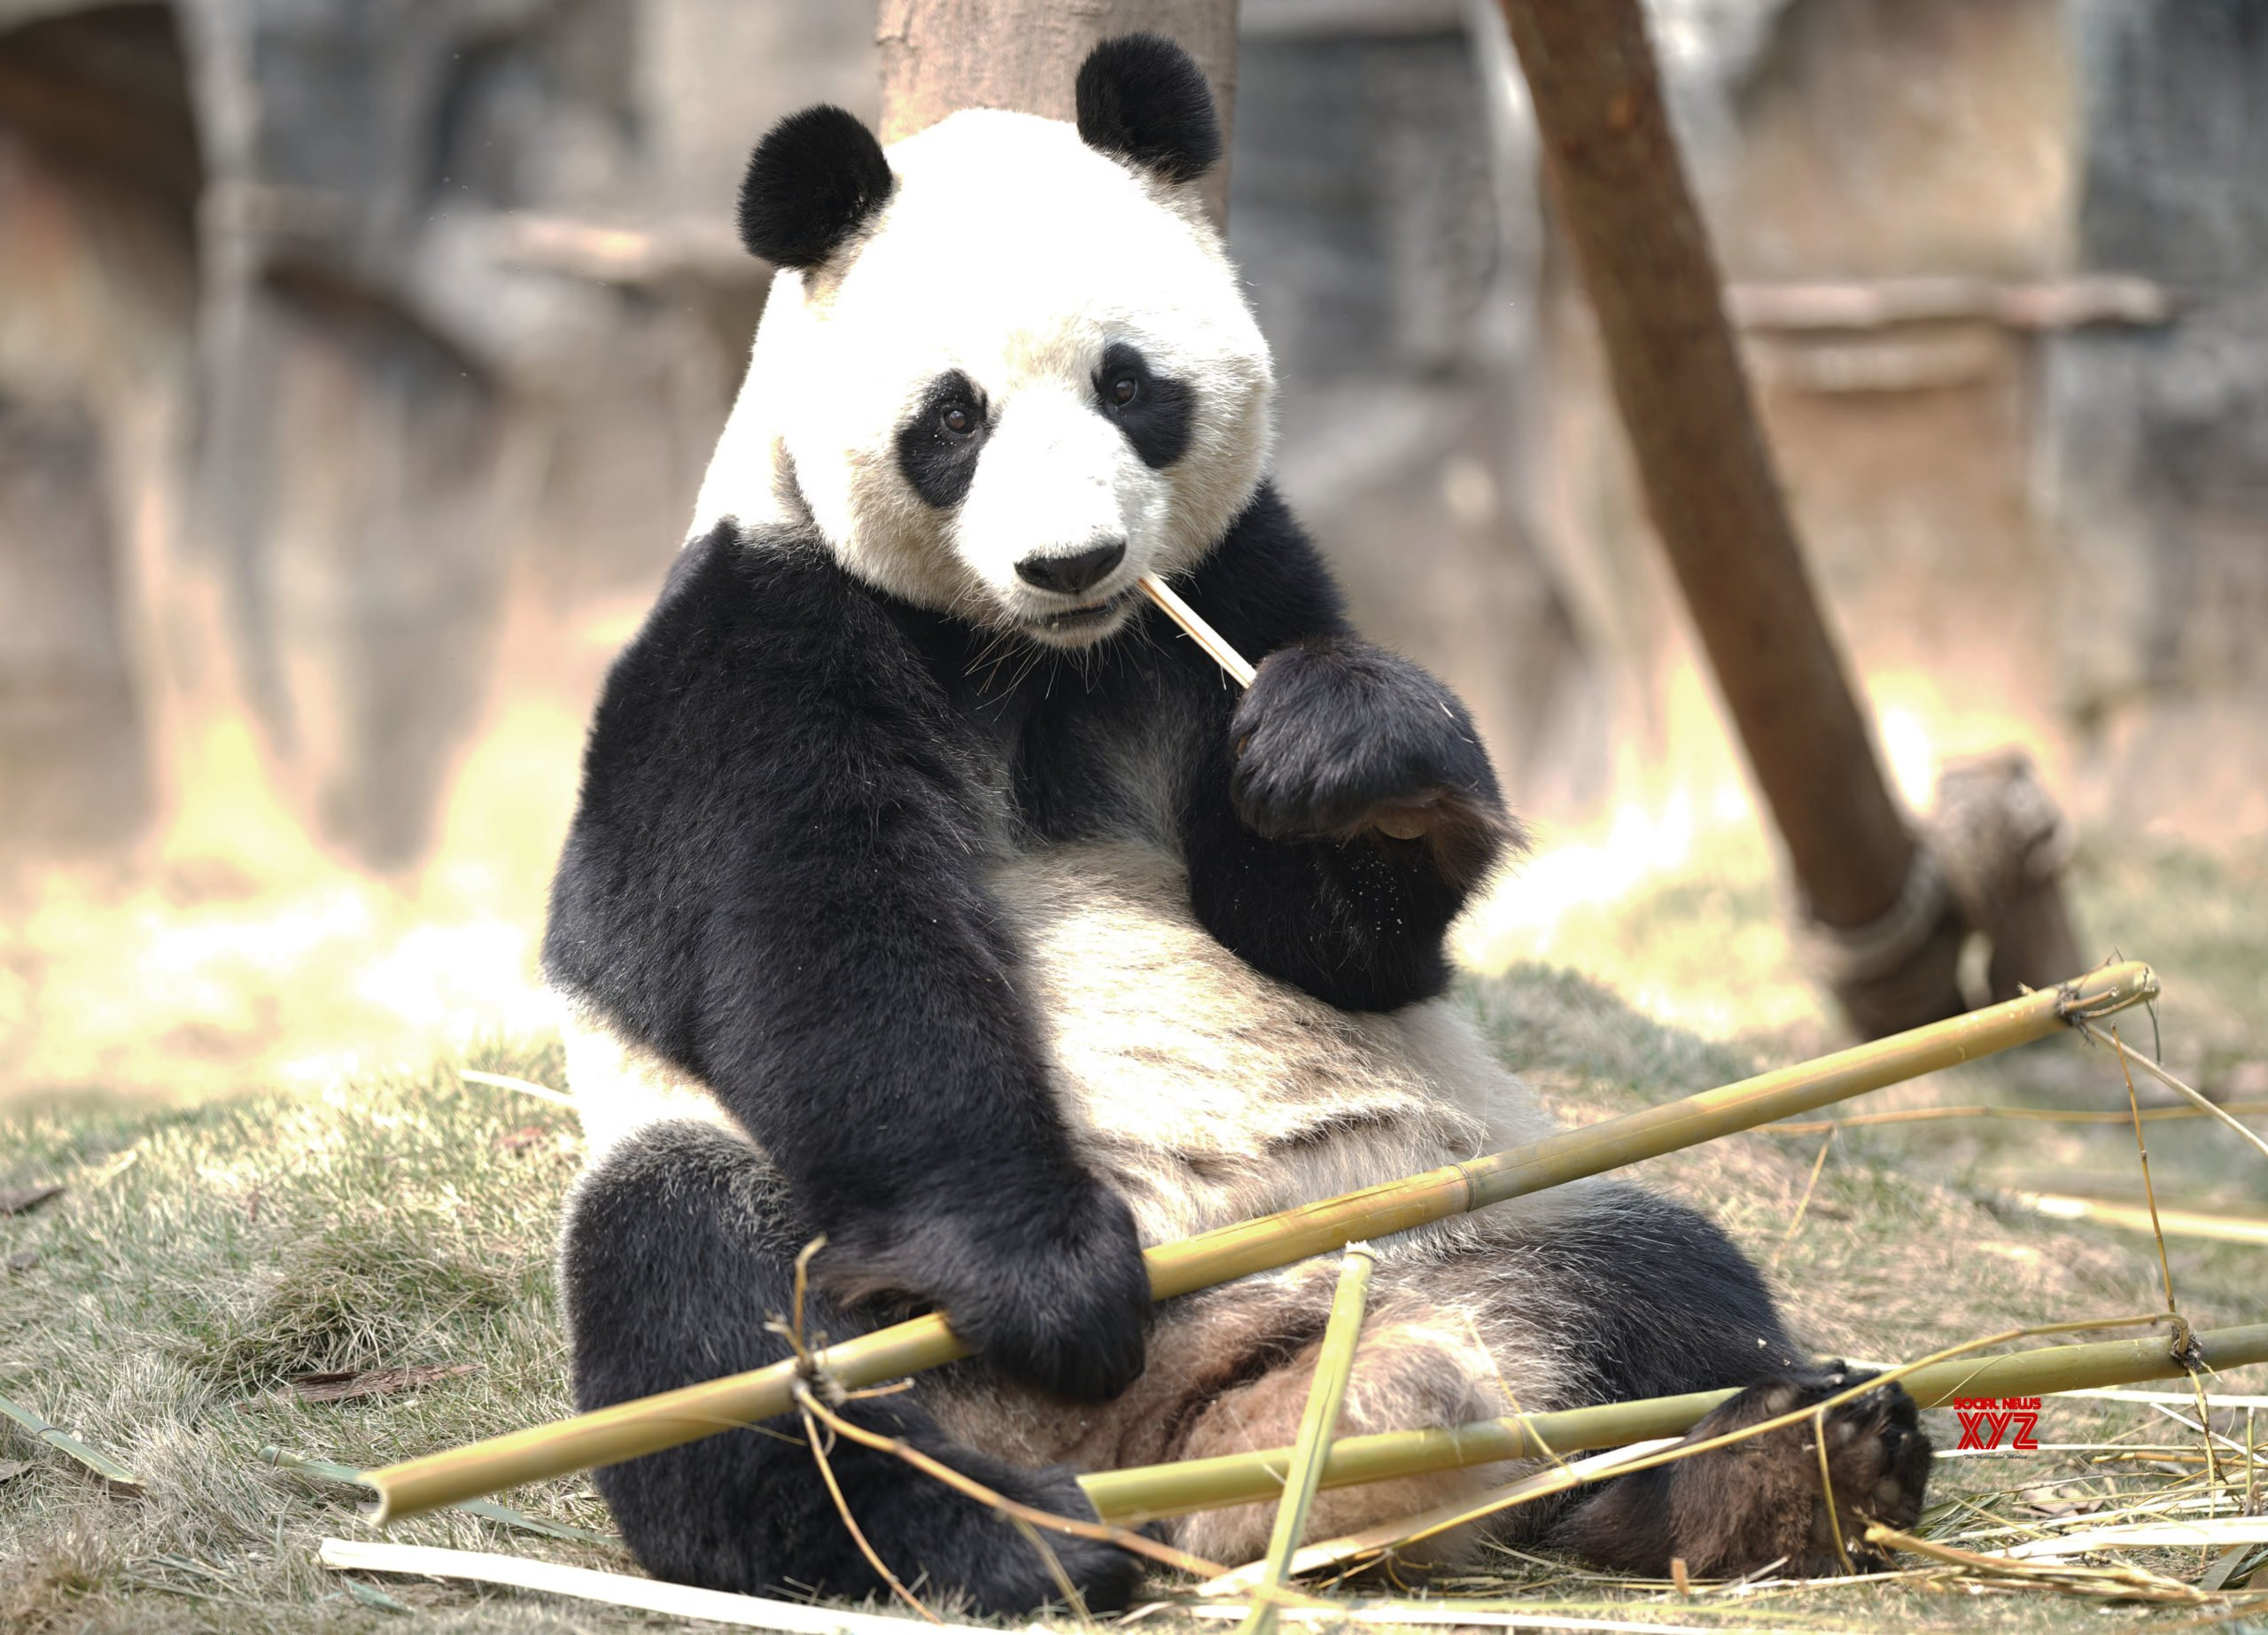 Zoo returns two pandas to China due to bamboo shortage amid pandemic